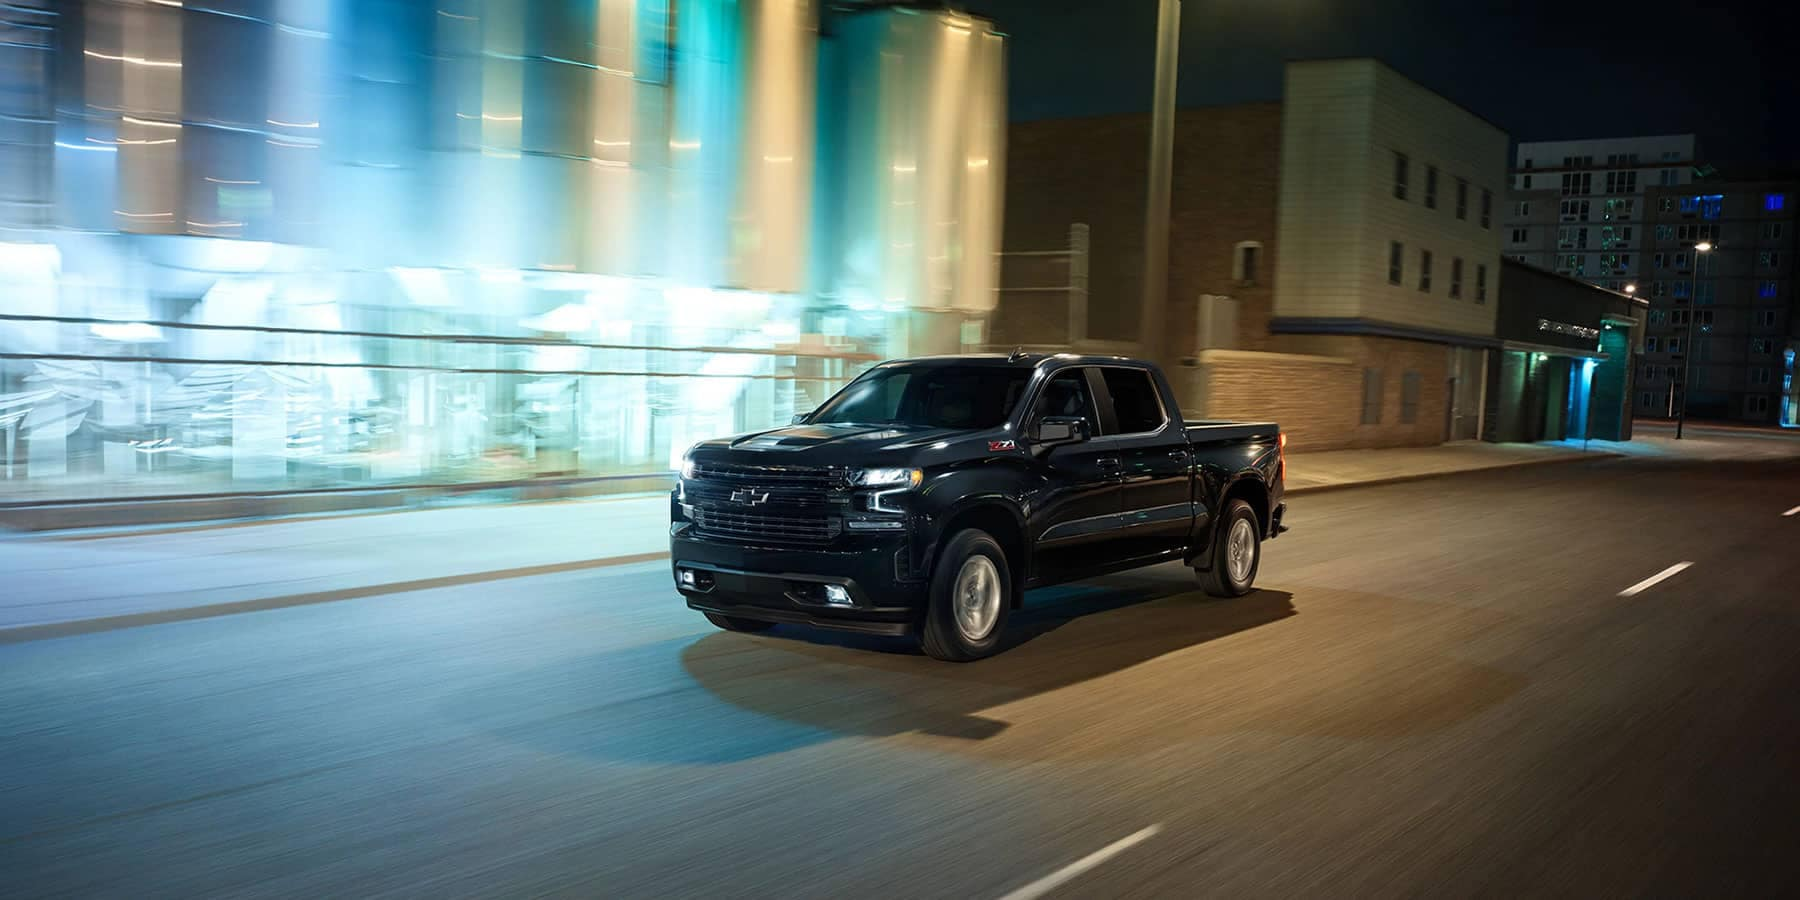 Chevrolet Silverado driving on the city street at night